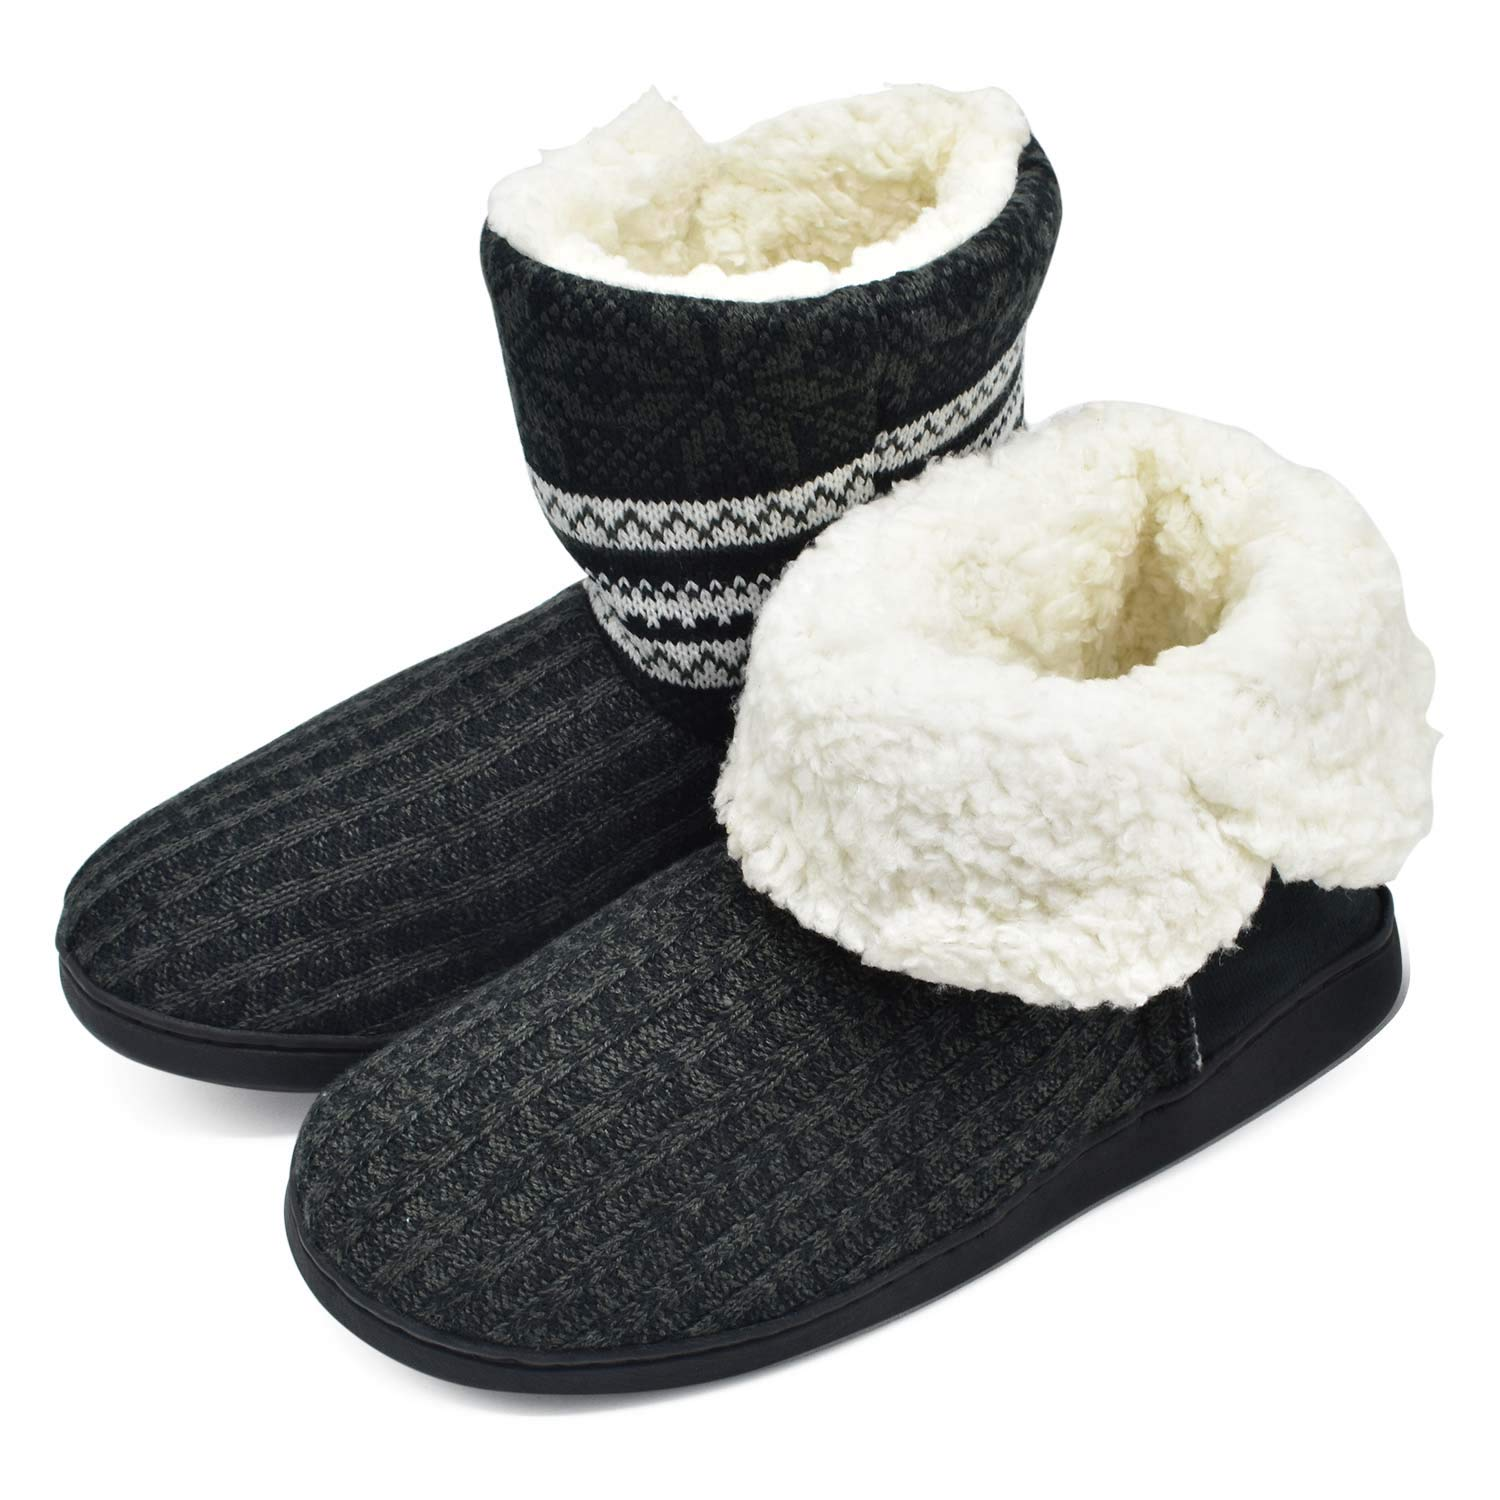 Image of Breathable Cable Knit Boot Slipper for Women - See More Colors/Patterns